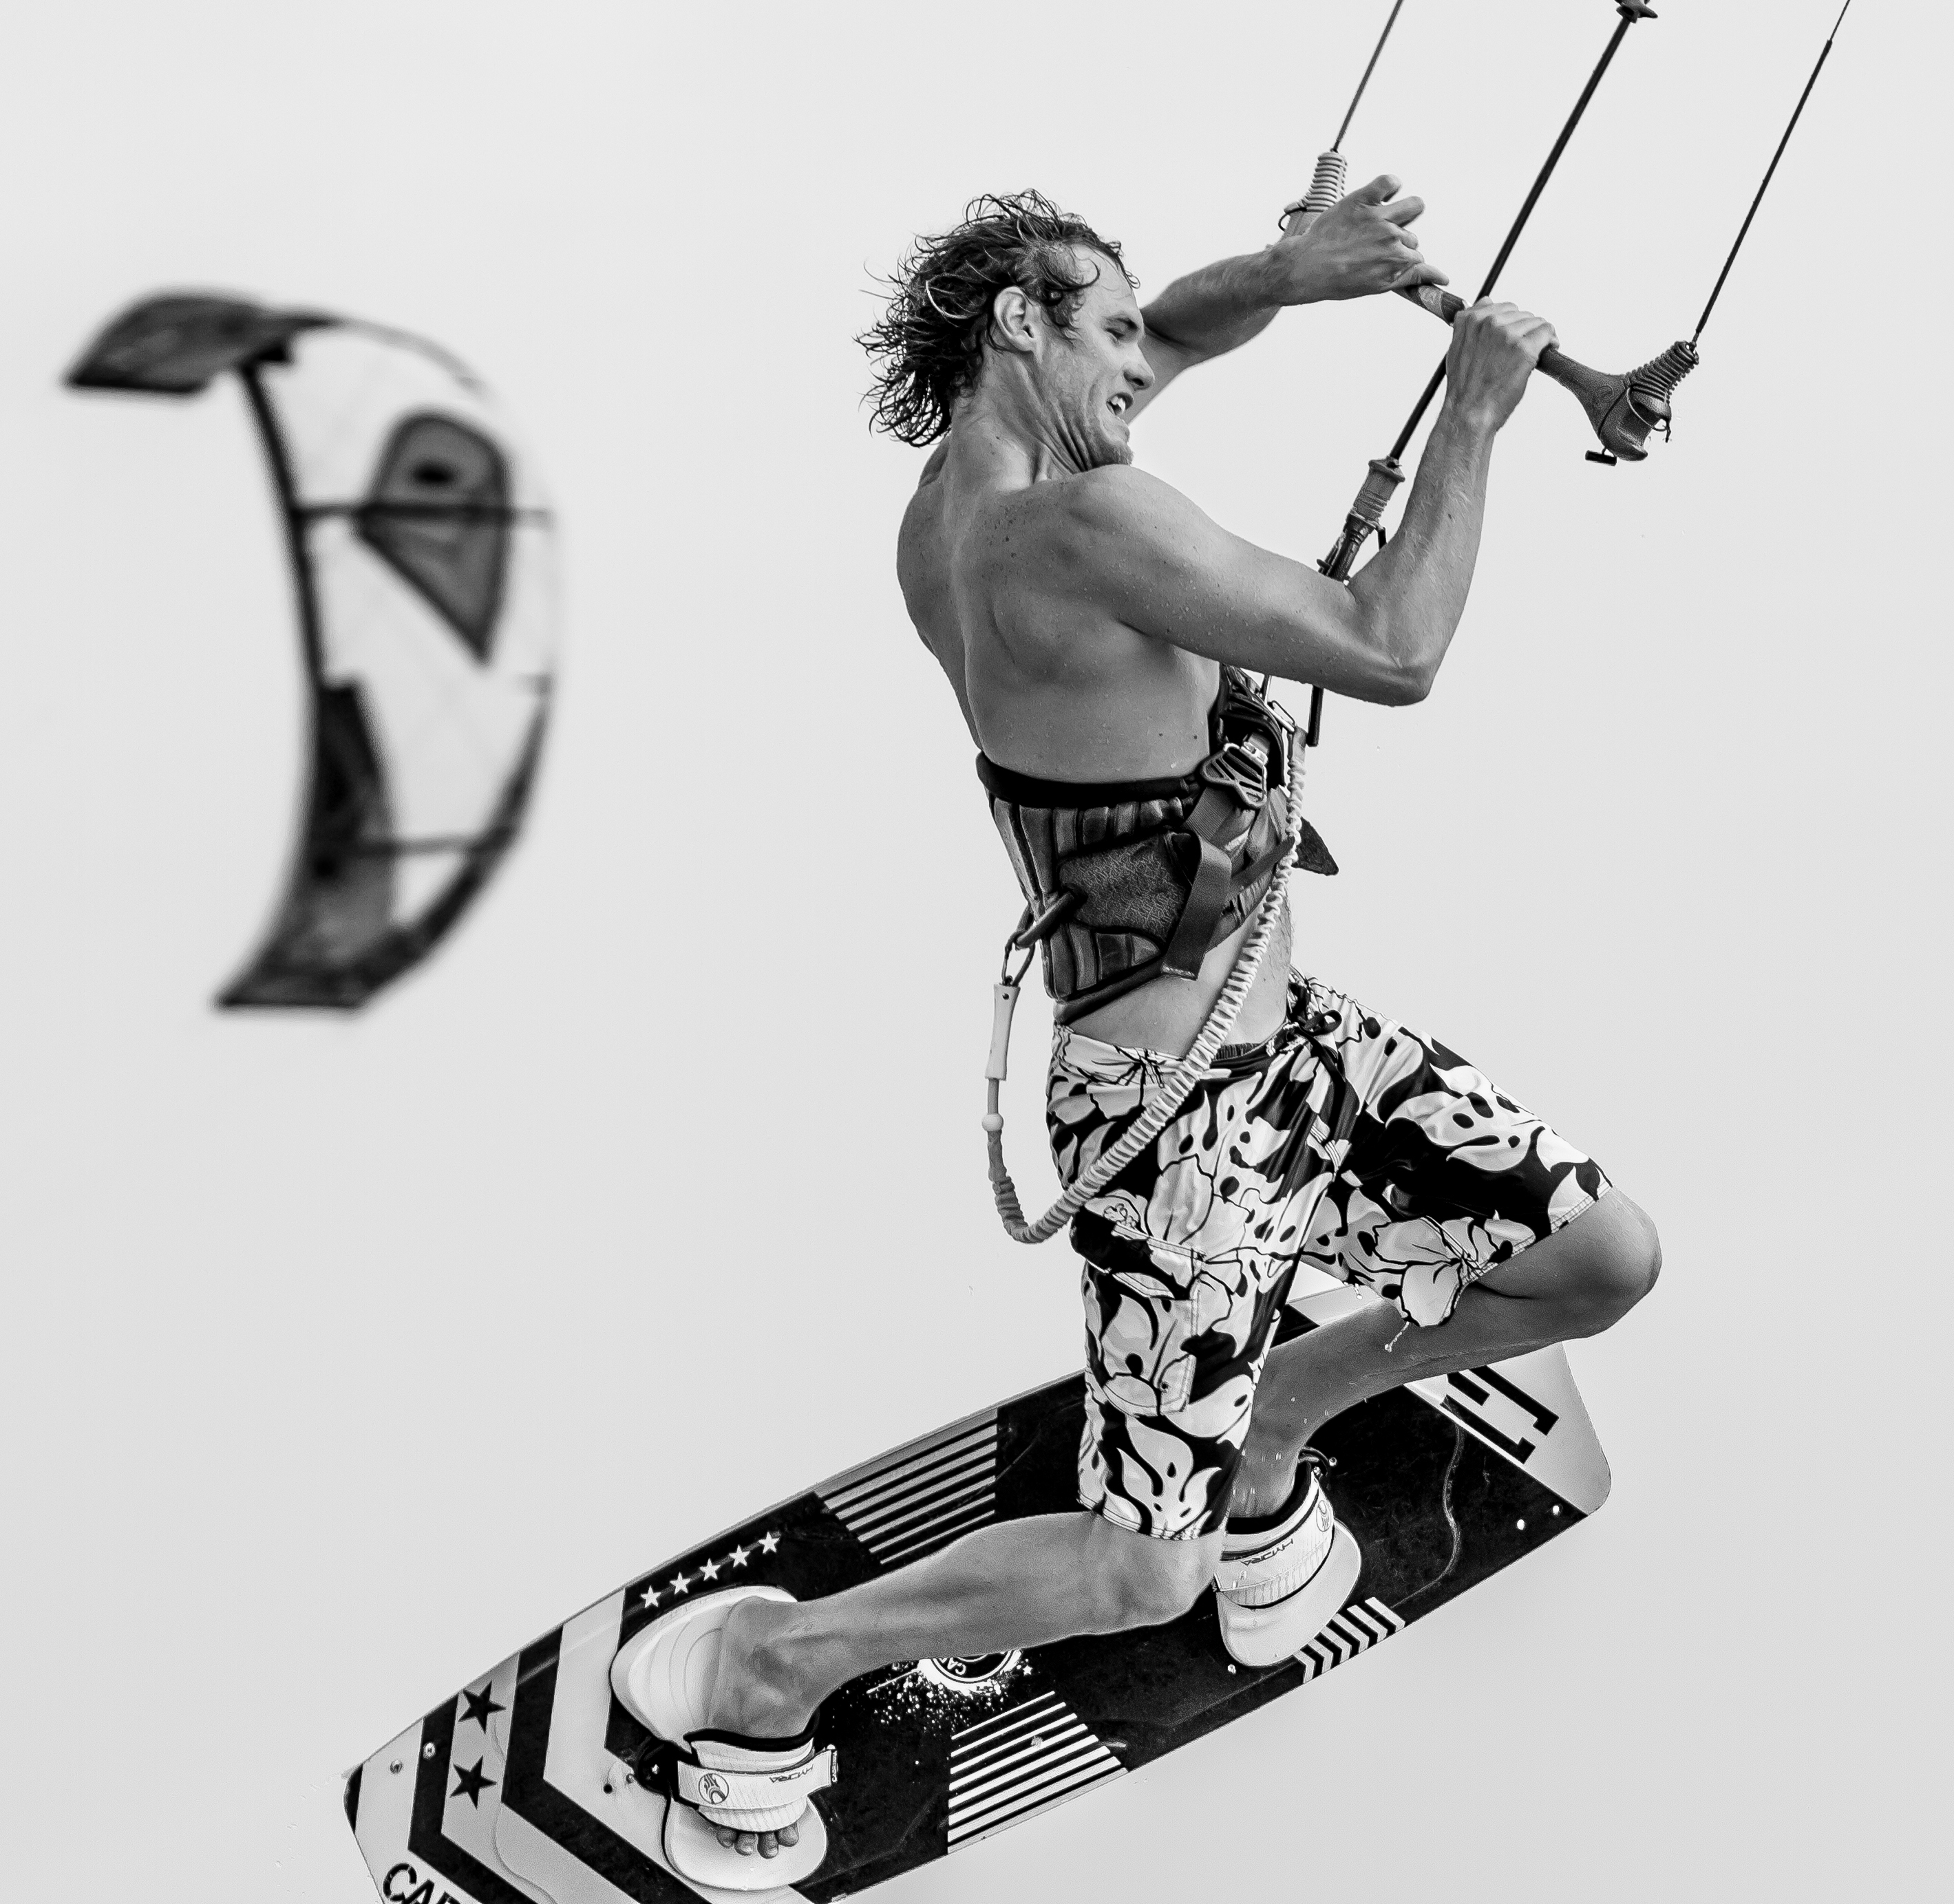 Tony Filson Kitesurfing Photography